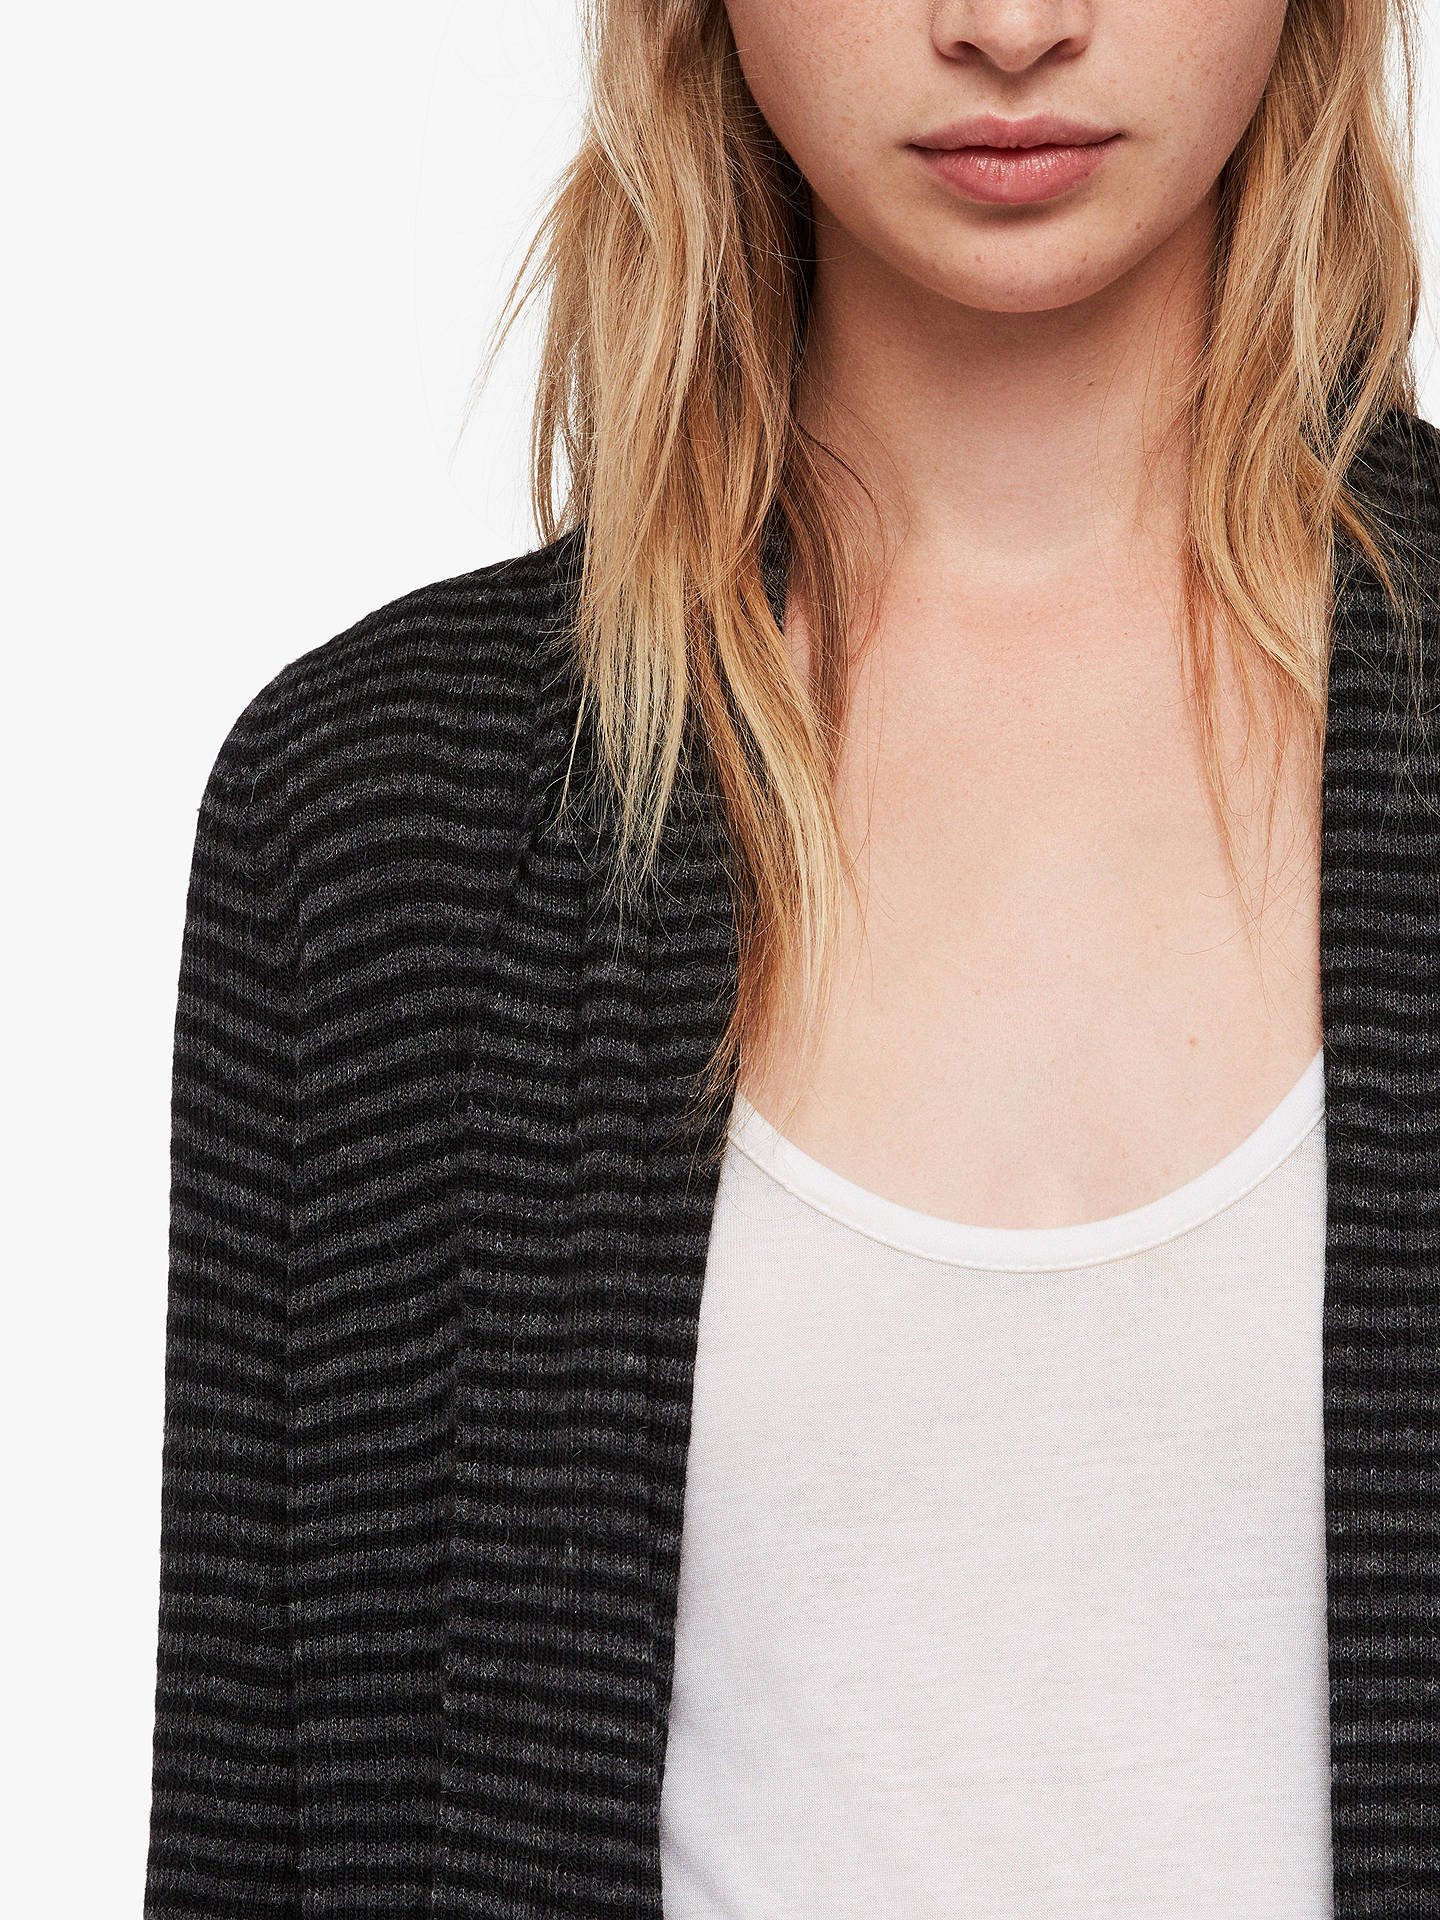 BuyAllSaints Keld Olivo Cardigan, Cinder Black Stripe, L Online at johnlewis.com